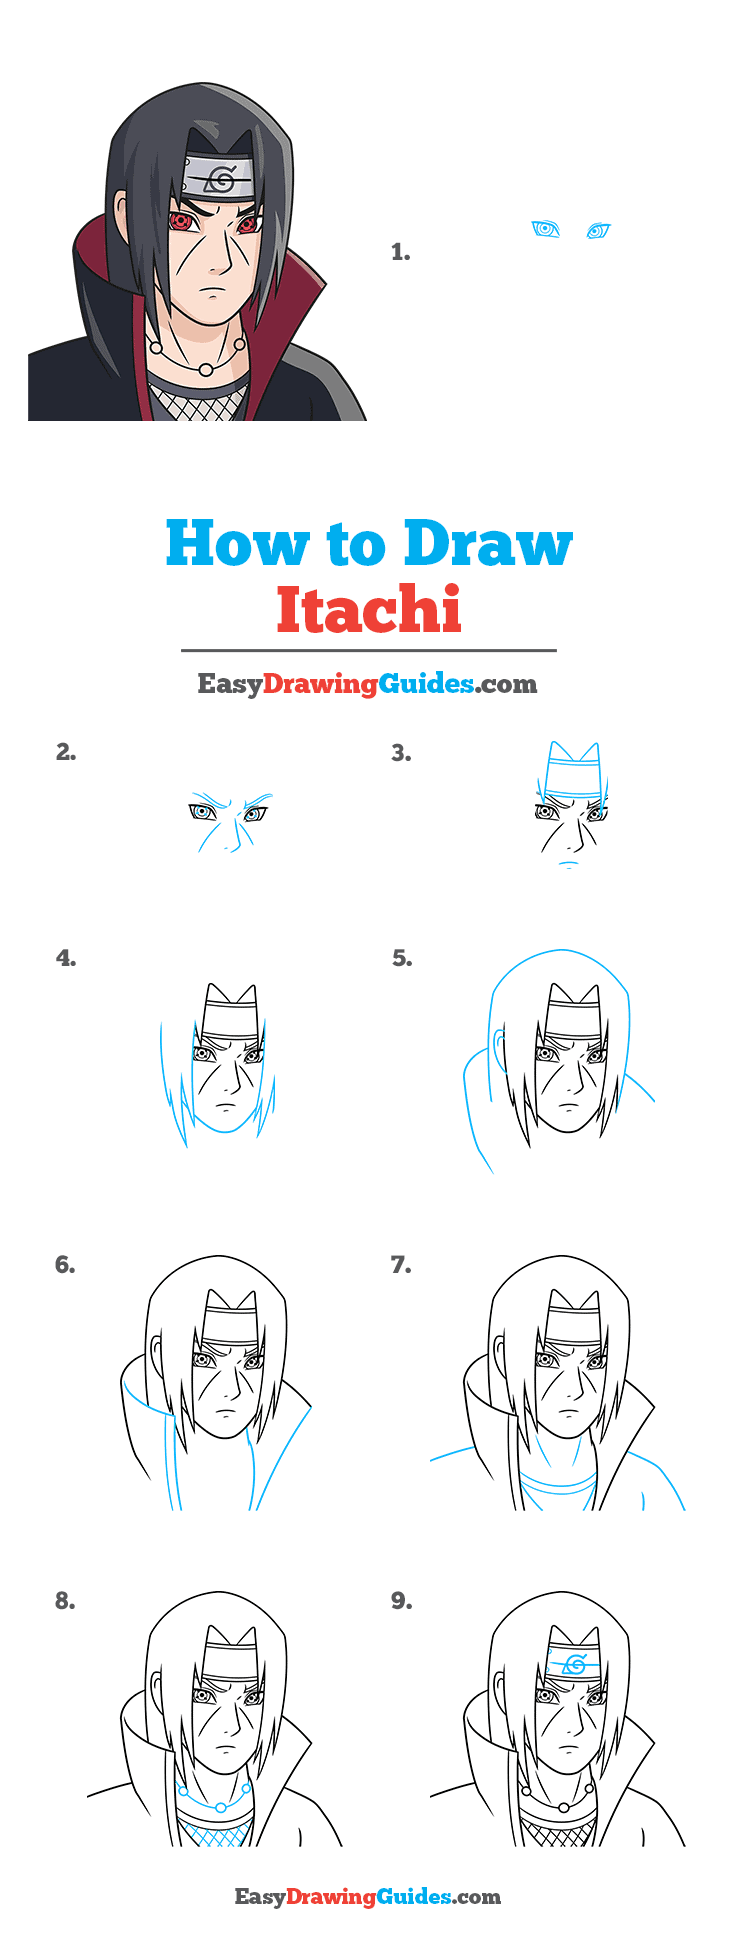 How to Draw Itachi